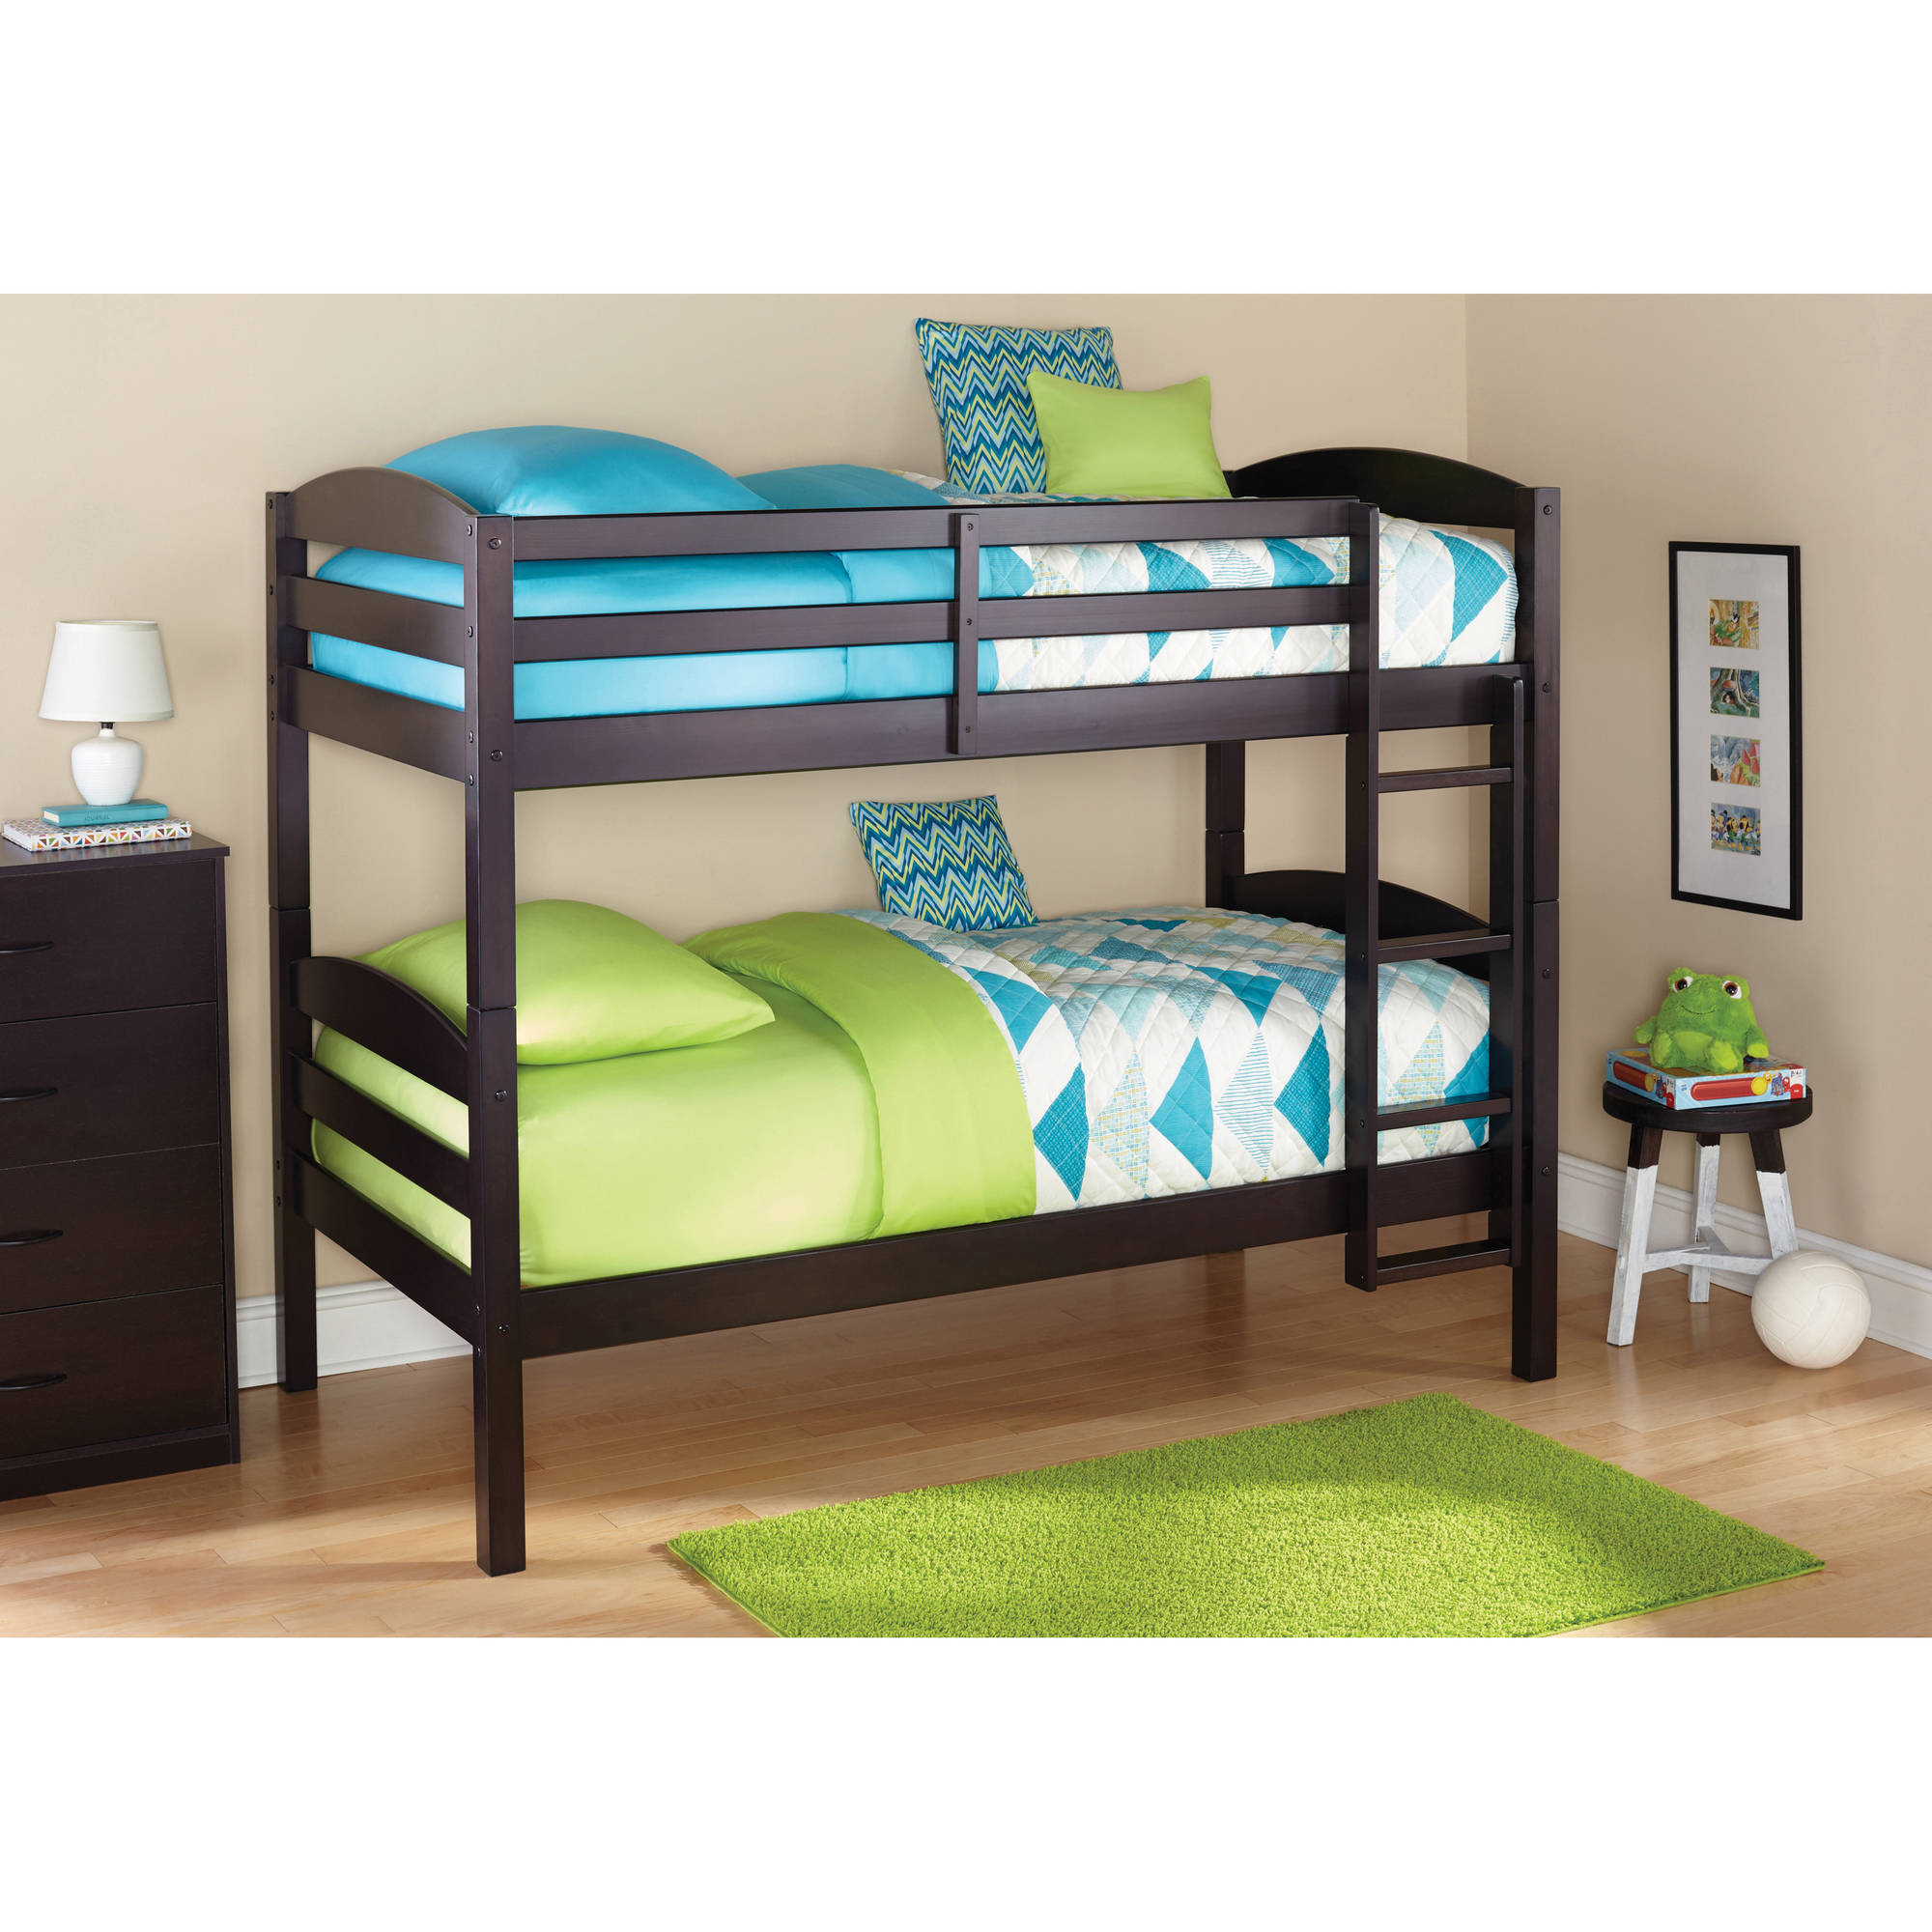 Bunk Beds Twin Over Twin Kids Furniture Bedroom Ladder ...